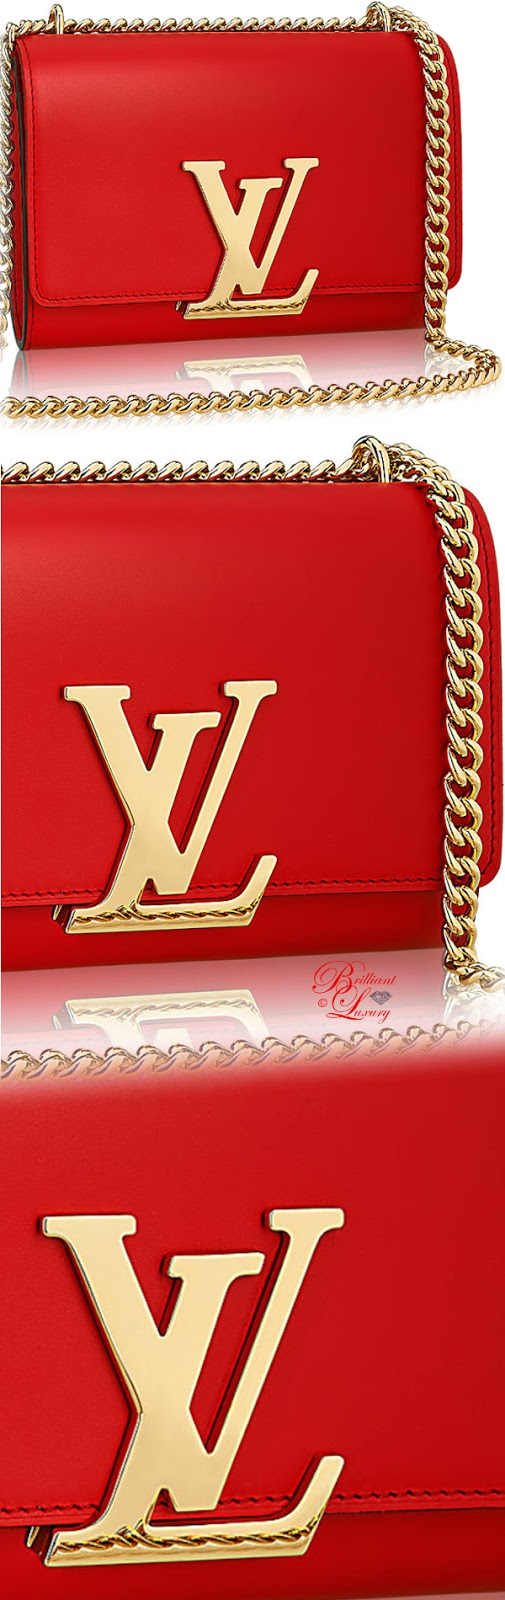 Brilliant Luxury ♦ Louis Vuitton chain Louise MM bag